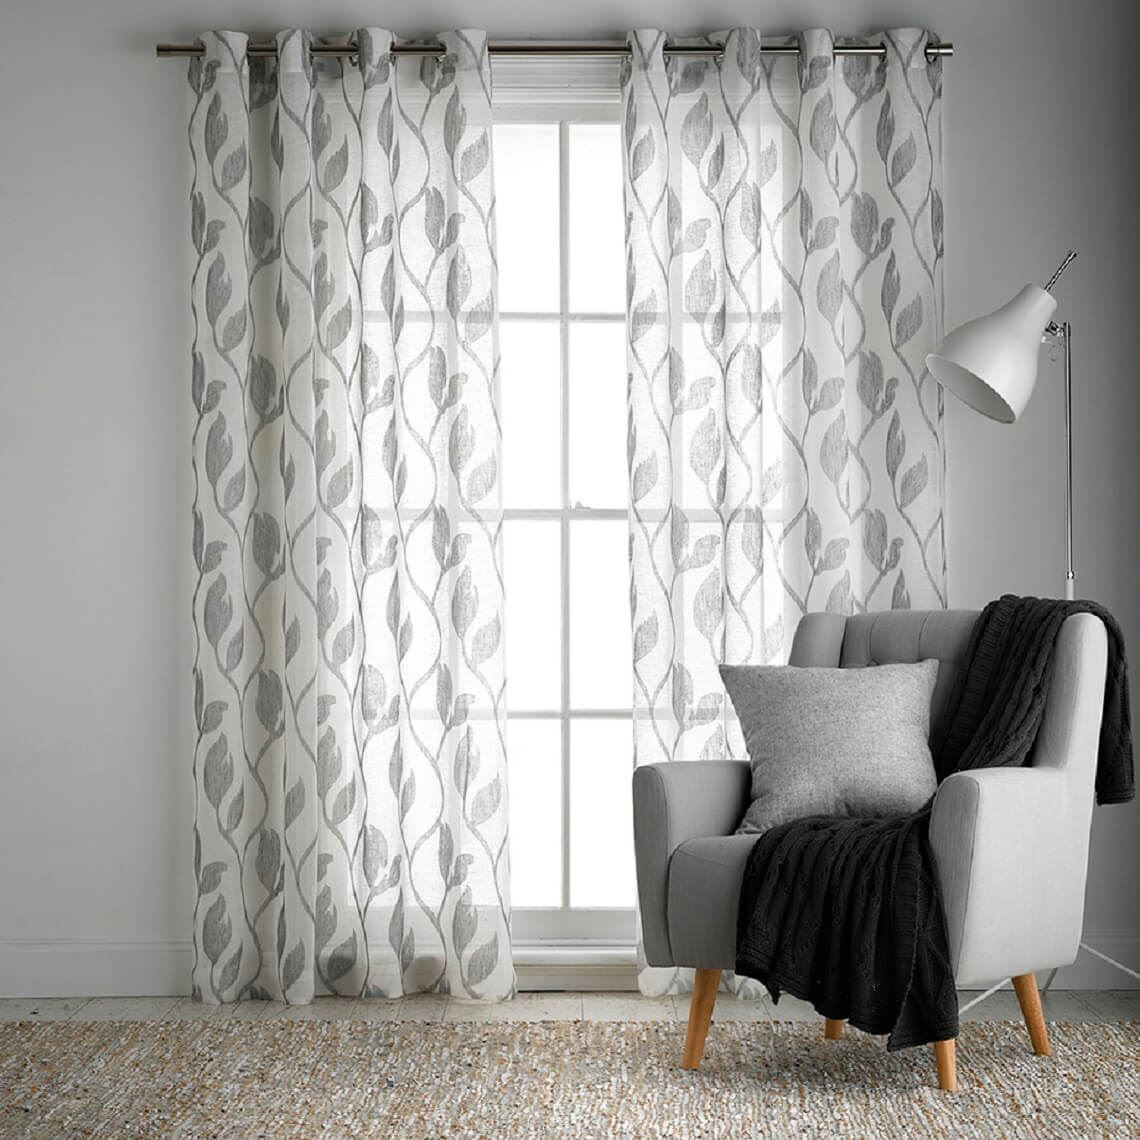 Tendril Sheer Eyelet Curtain Size W 180cm x D 1cm x H 250cm in Grey 100% Polyester/Stainless Steel Freedom by Freedom, a Curtains for sale on Style Sourcebook